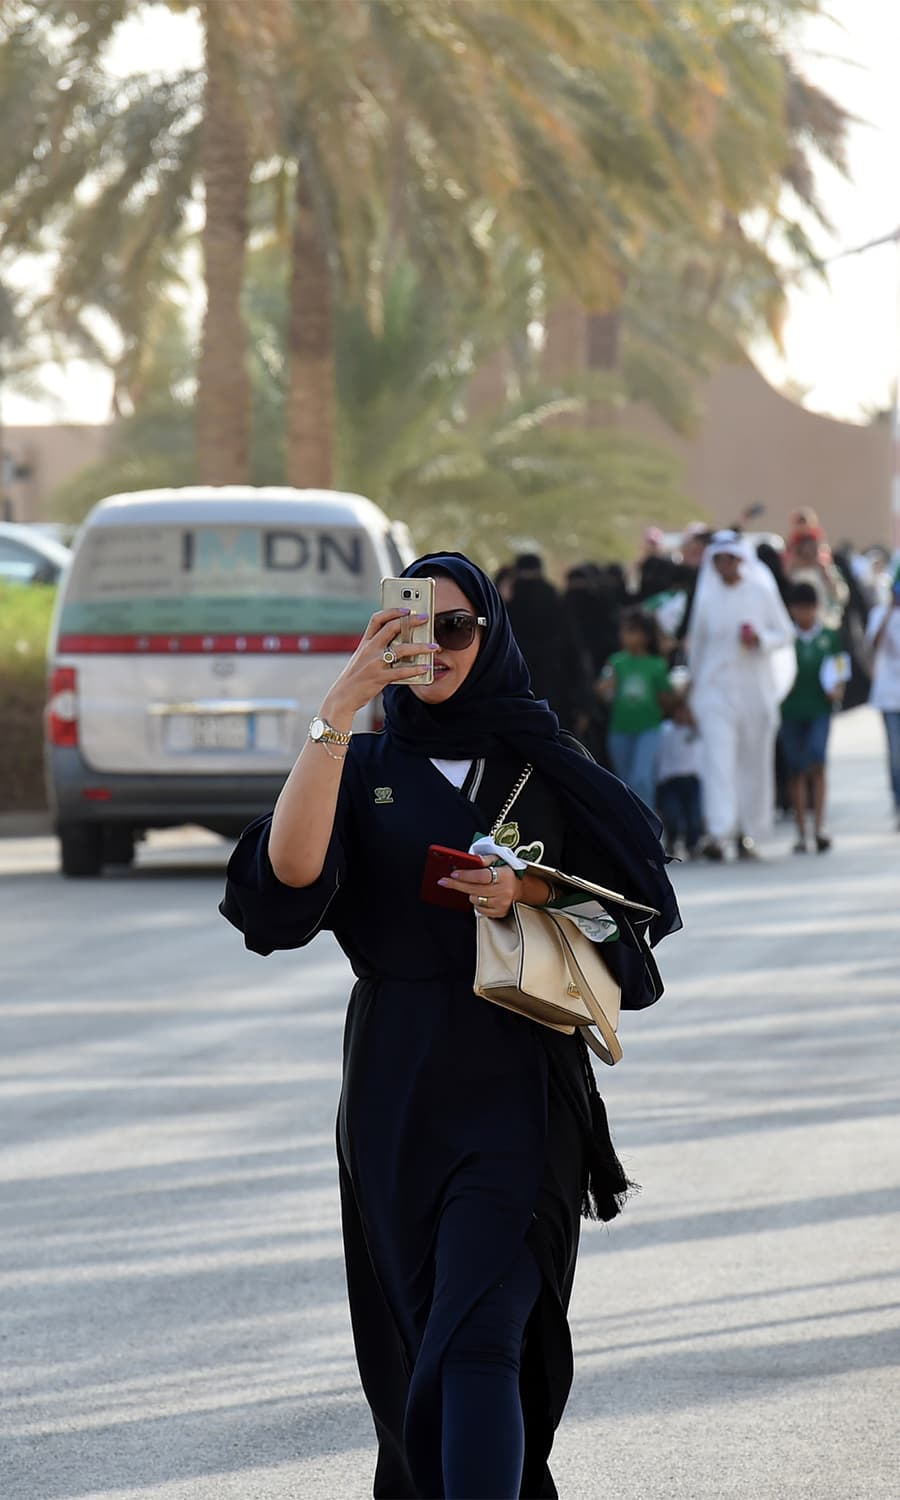 A Saudi woman uses her cell phone to take a picture as she arrives outside a stadium to attend an event in the capital Riyadh. — AFP